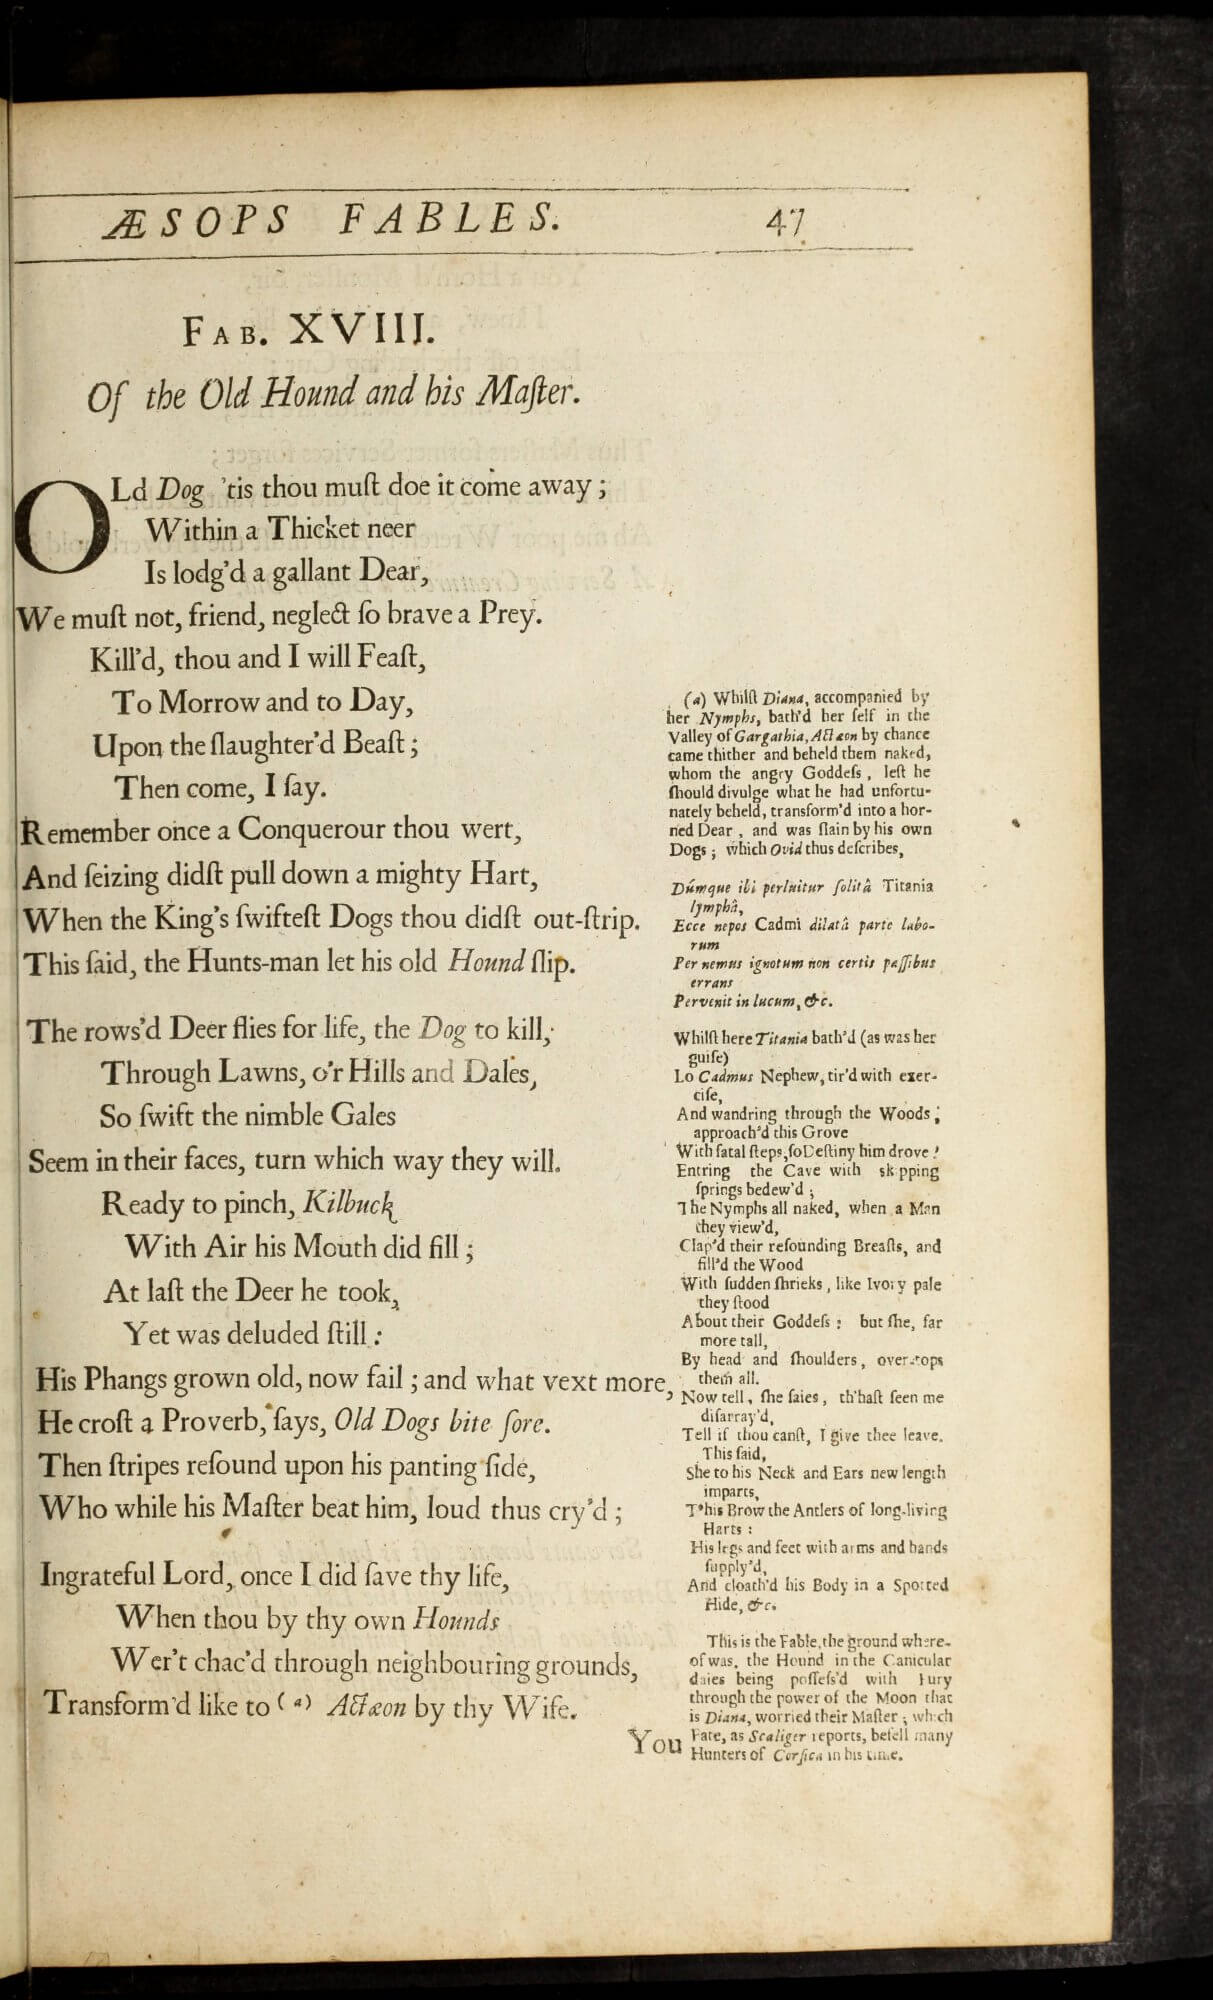 Ogilby's version of Aesop's Fables uses the margins for extensive annotations.